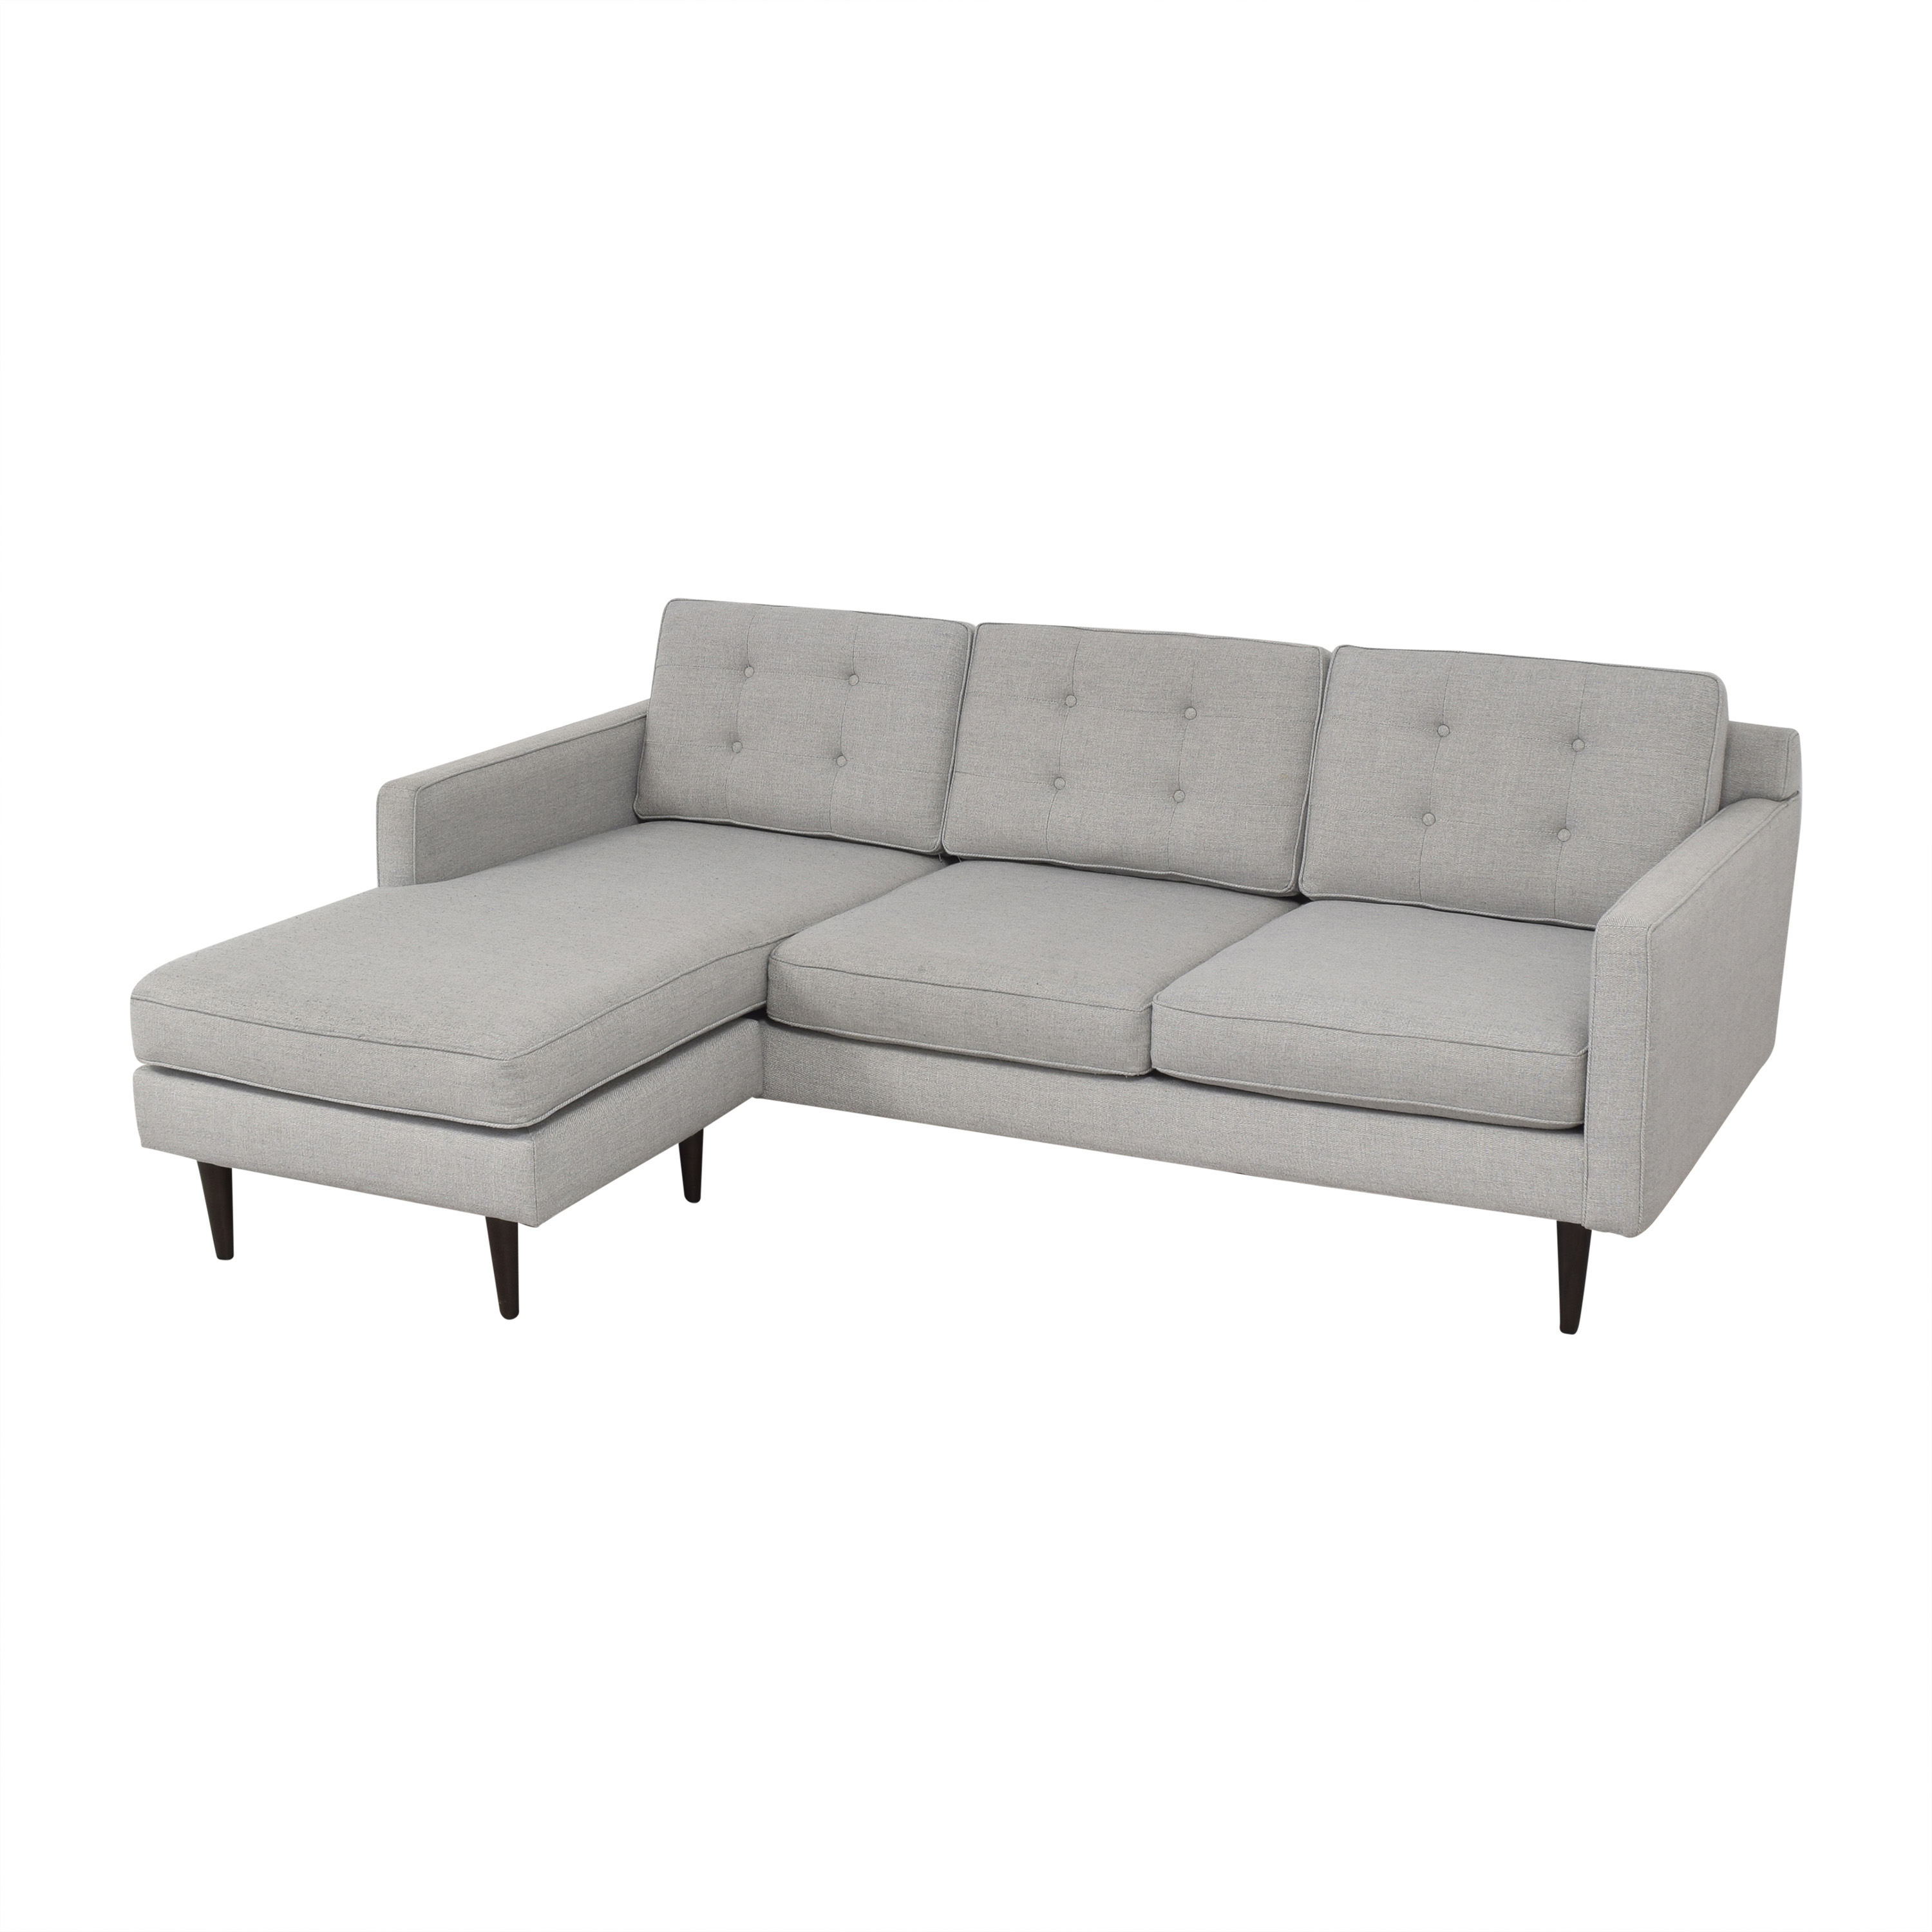 West Elm West Elm Drake Reversible Chaise Sectional Sofa ma